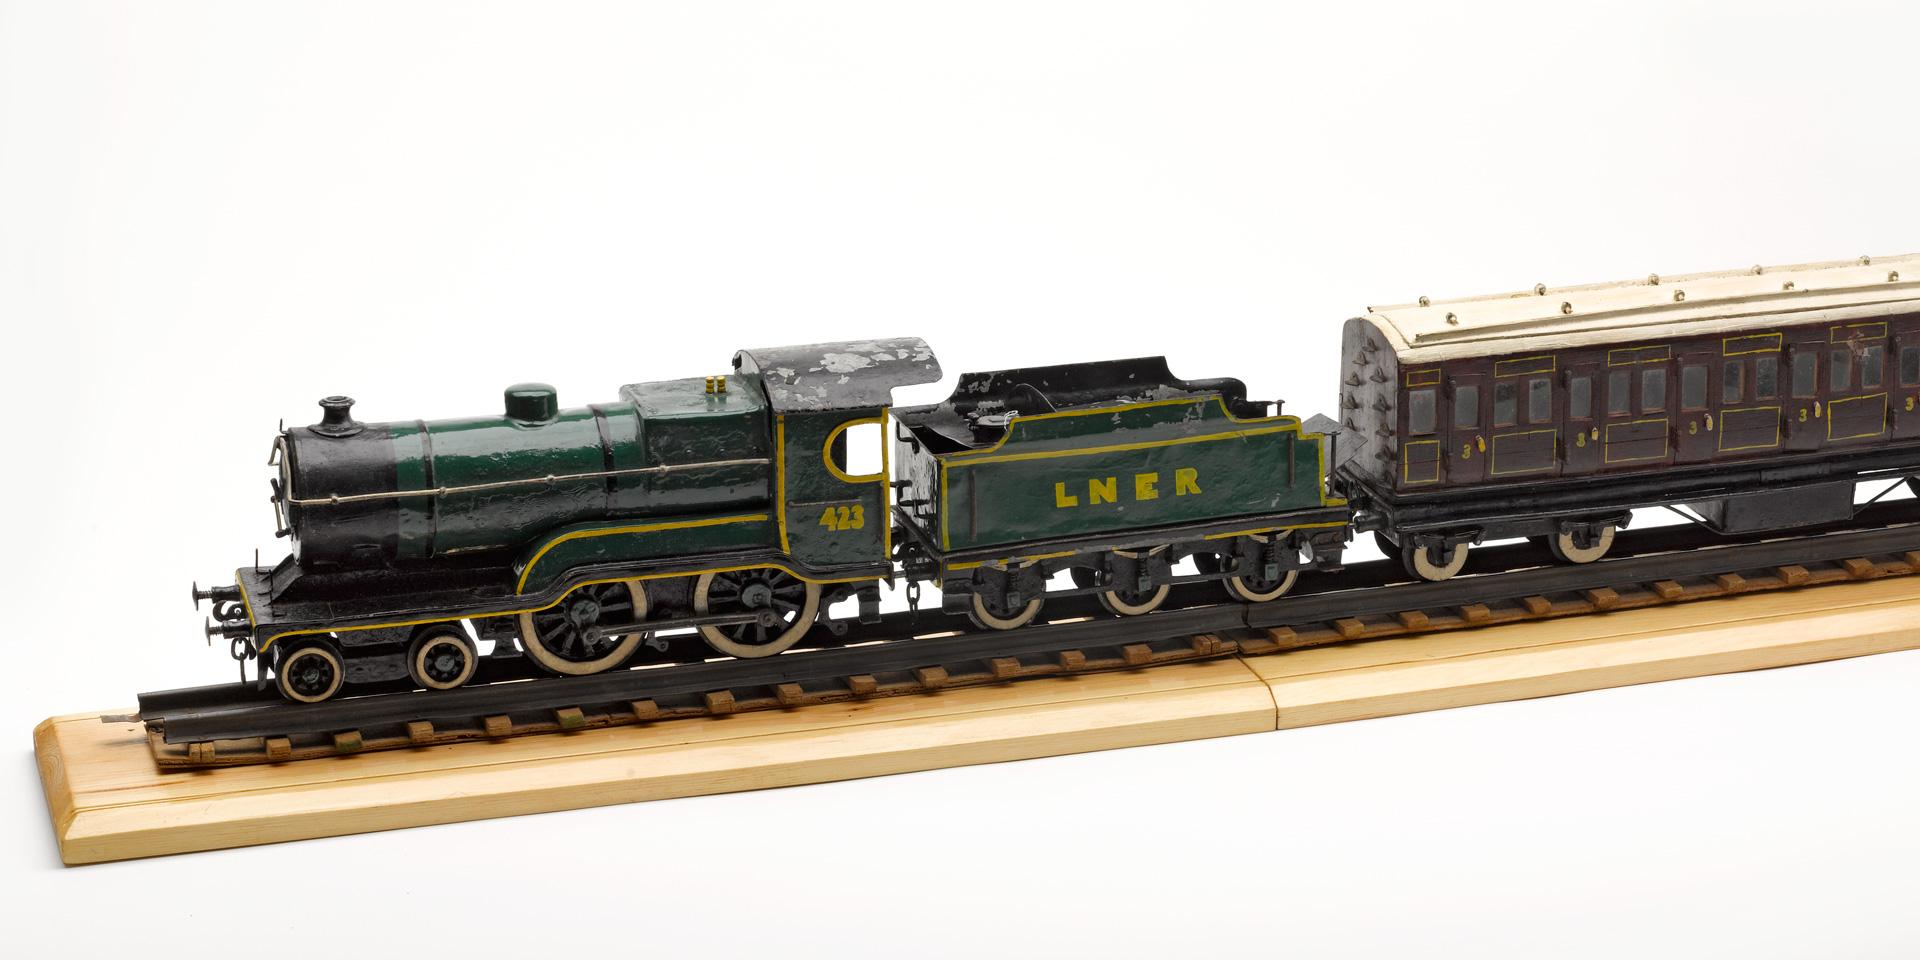 Model of a London and North Eastern Railway engine and carriage, c1943